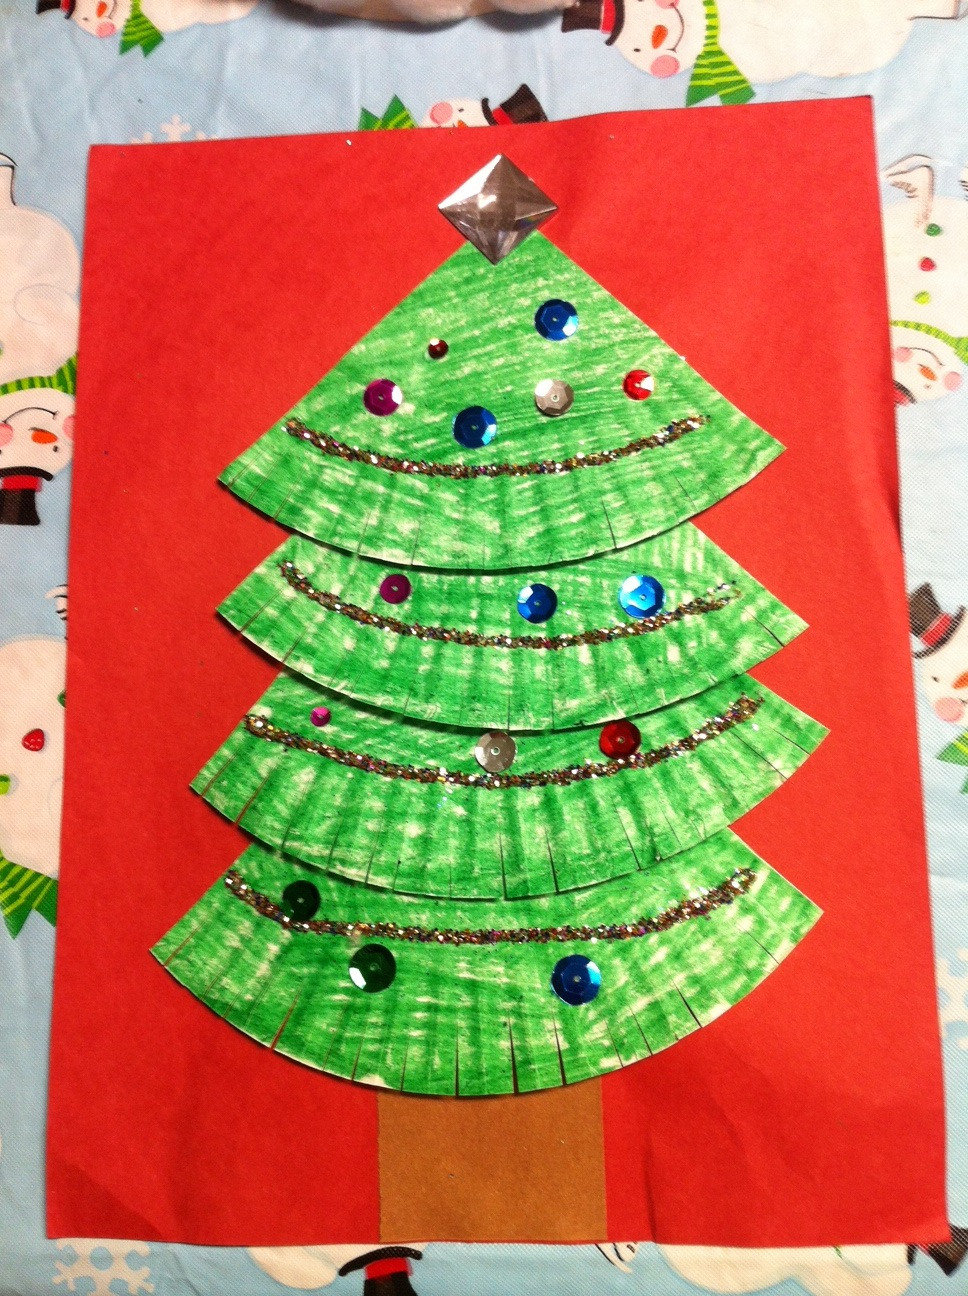 Christmas Art And Craft Ideas For Preschoolers  Kindergarten Kids At Play Fun Winter & Christmas Craftivities